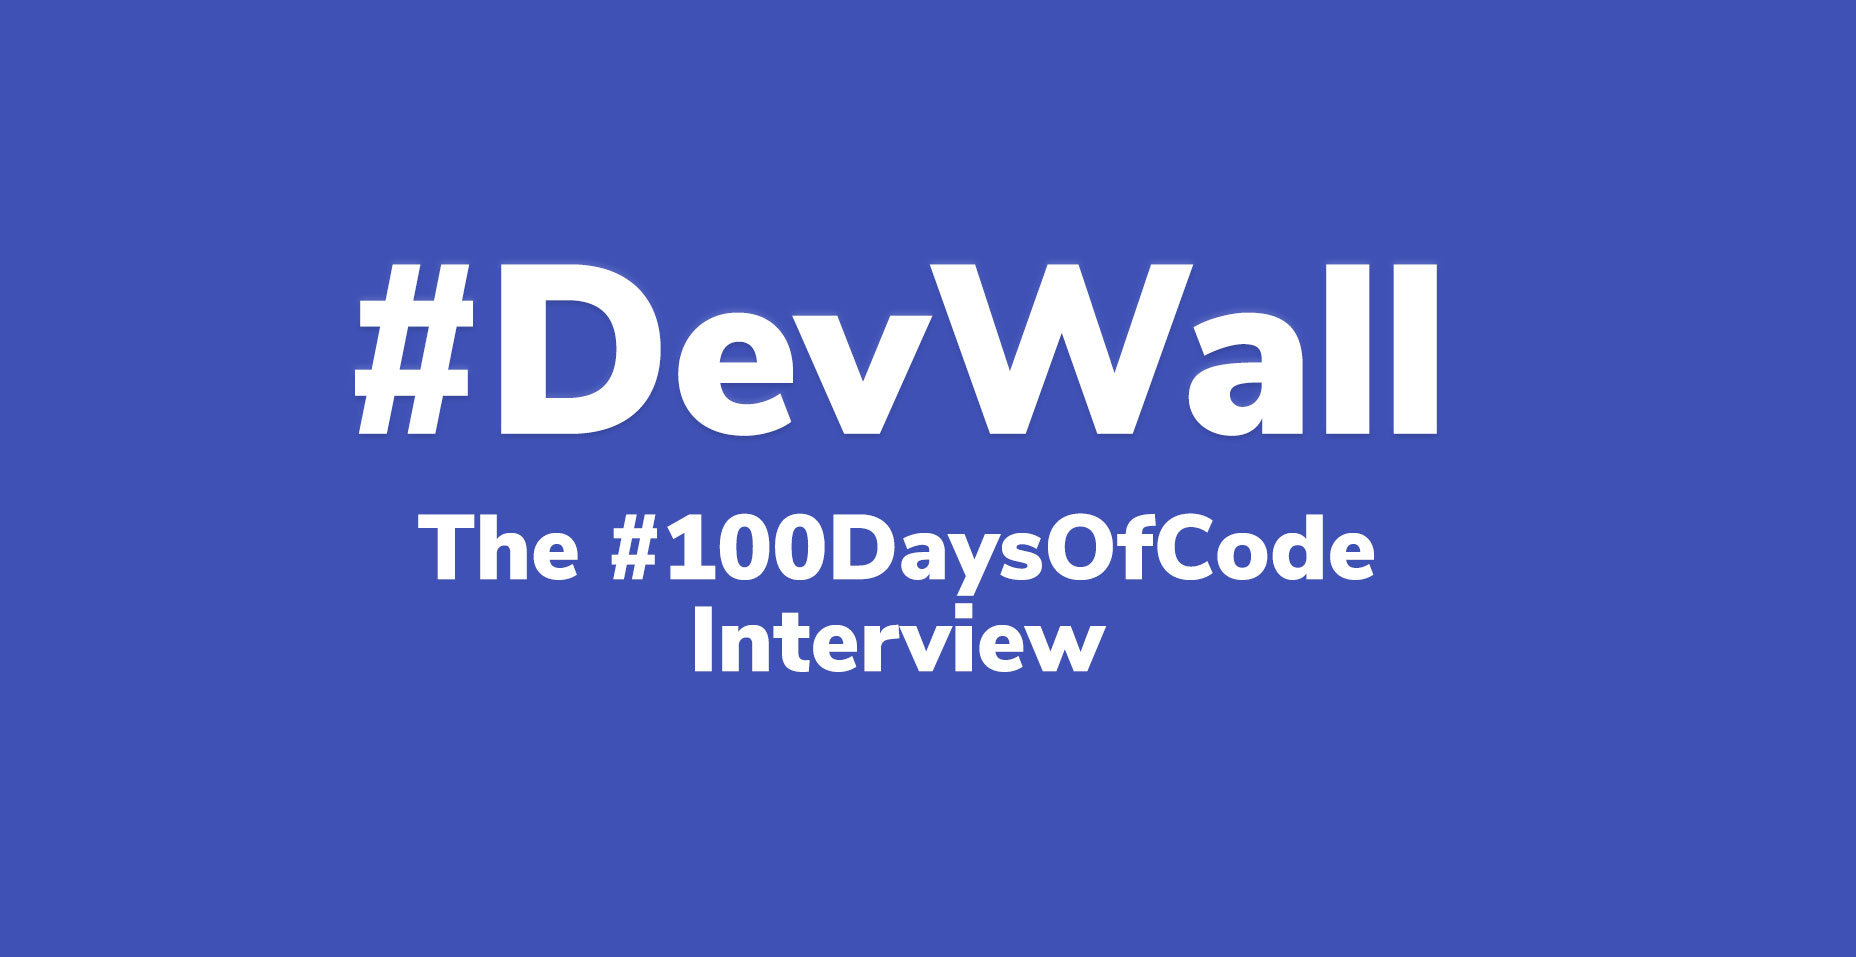 The #100DaysOfCode Interview | Code Wall